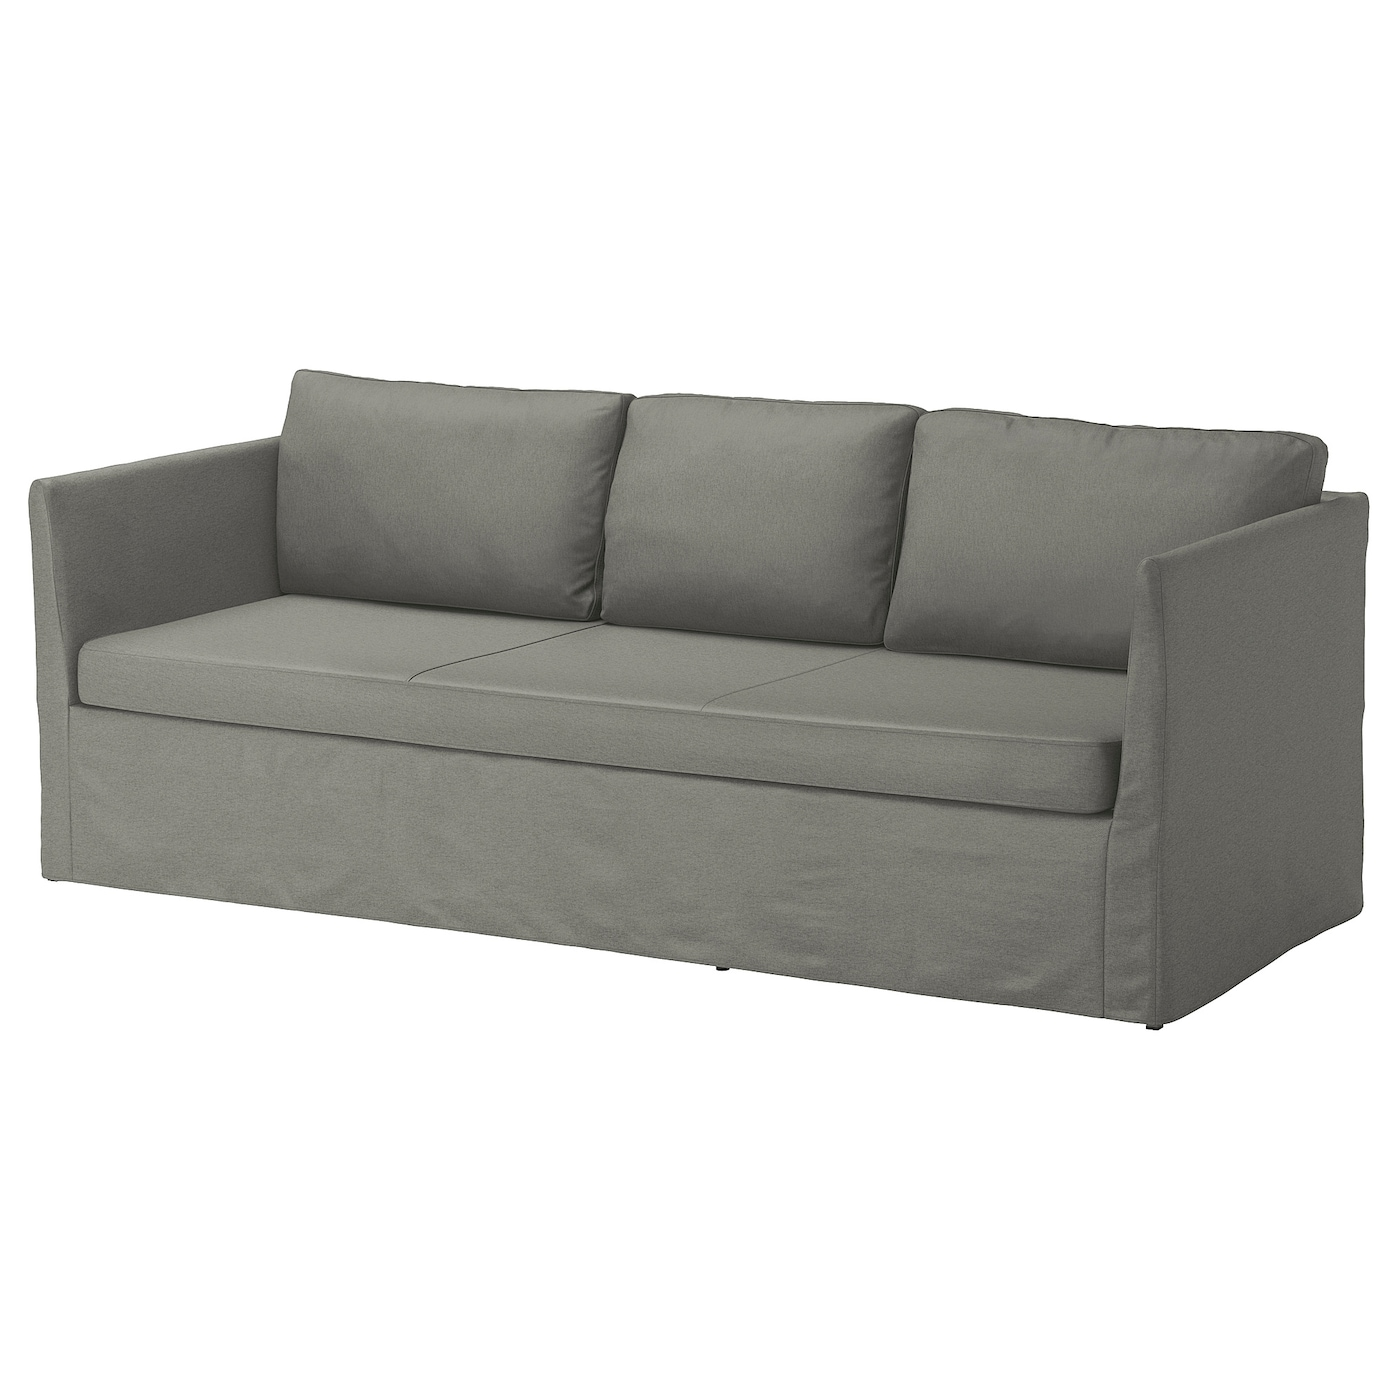 Ikea BrÅthult 3 Seat Sofa You Sit Comfortably Thanks To The Resilient Foam And Springy